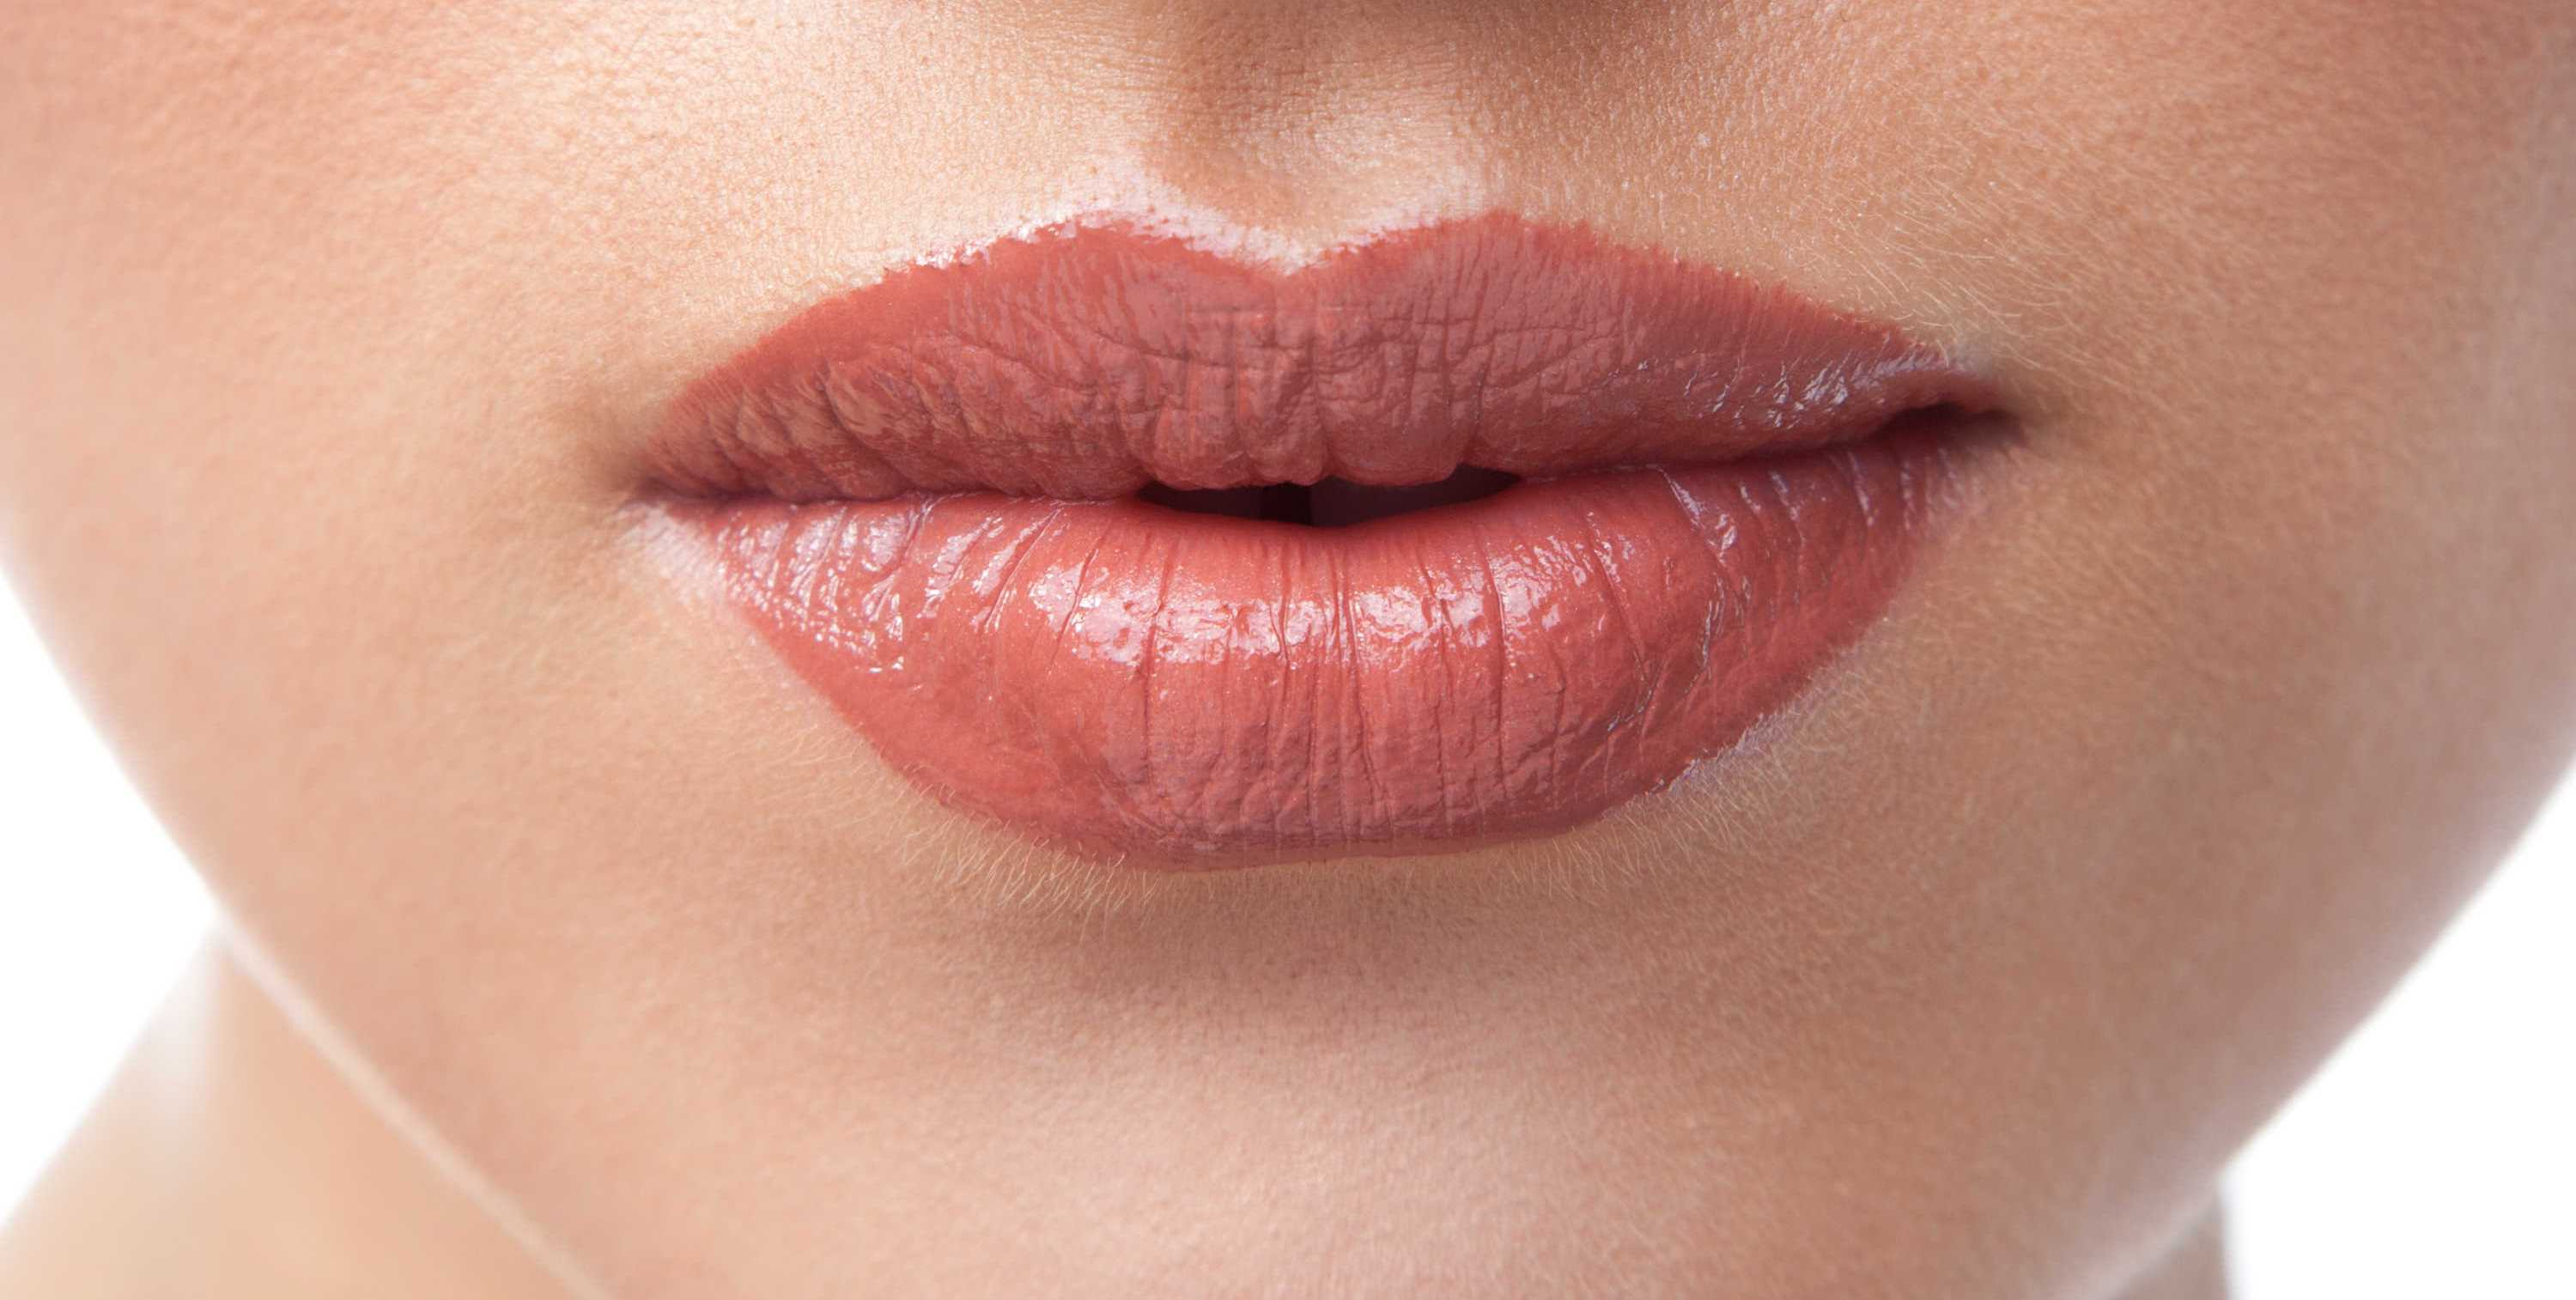 Beautiful Lip Augmentation with PermaLip